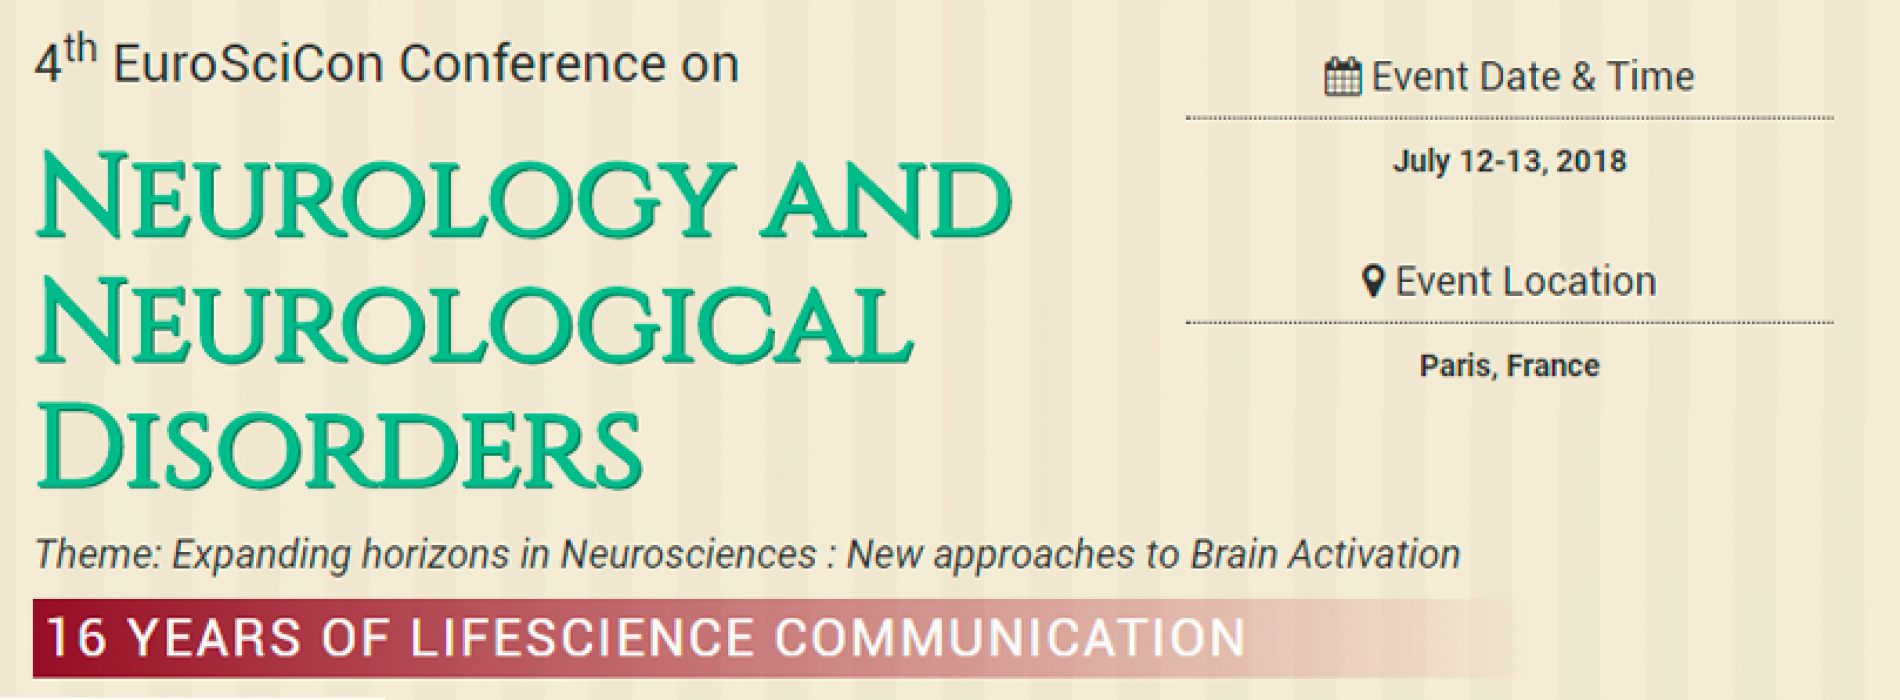 4th EuroSciCon Conference on Neurology and Neurological Disorders